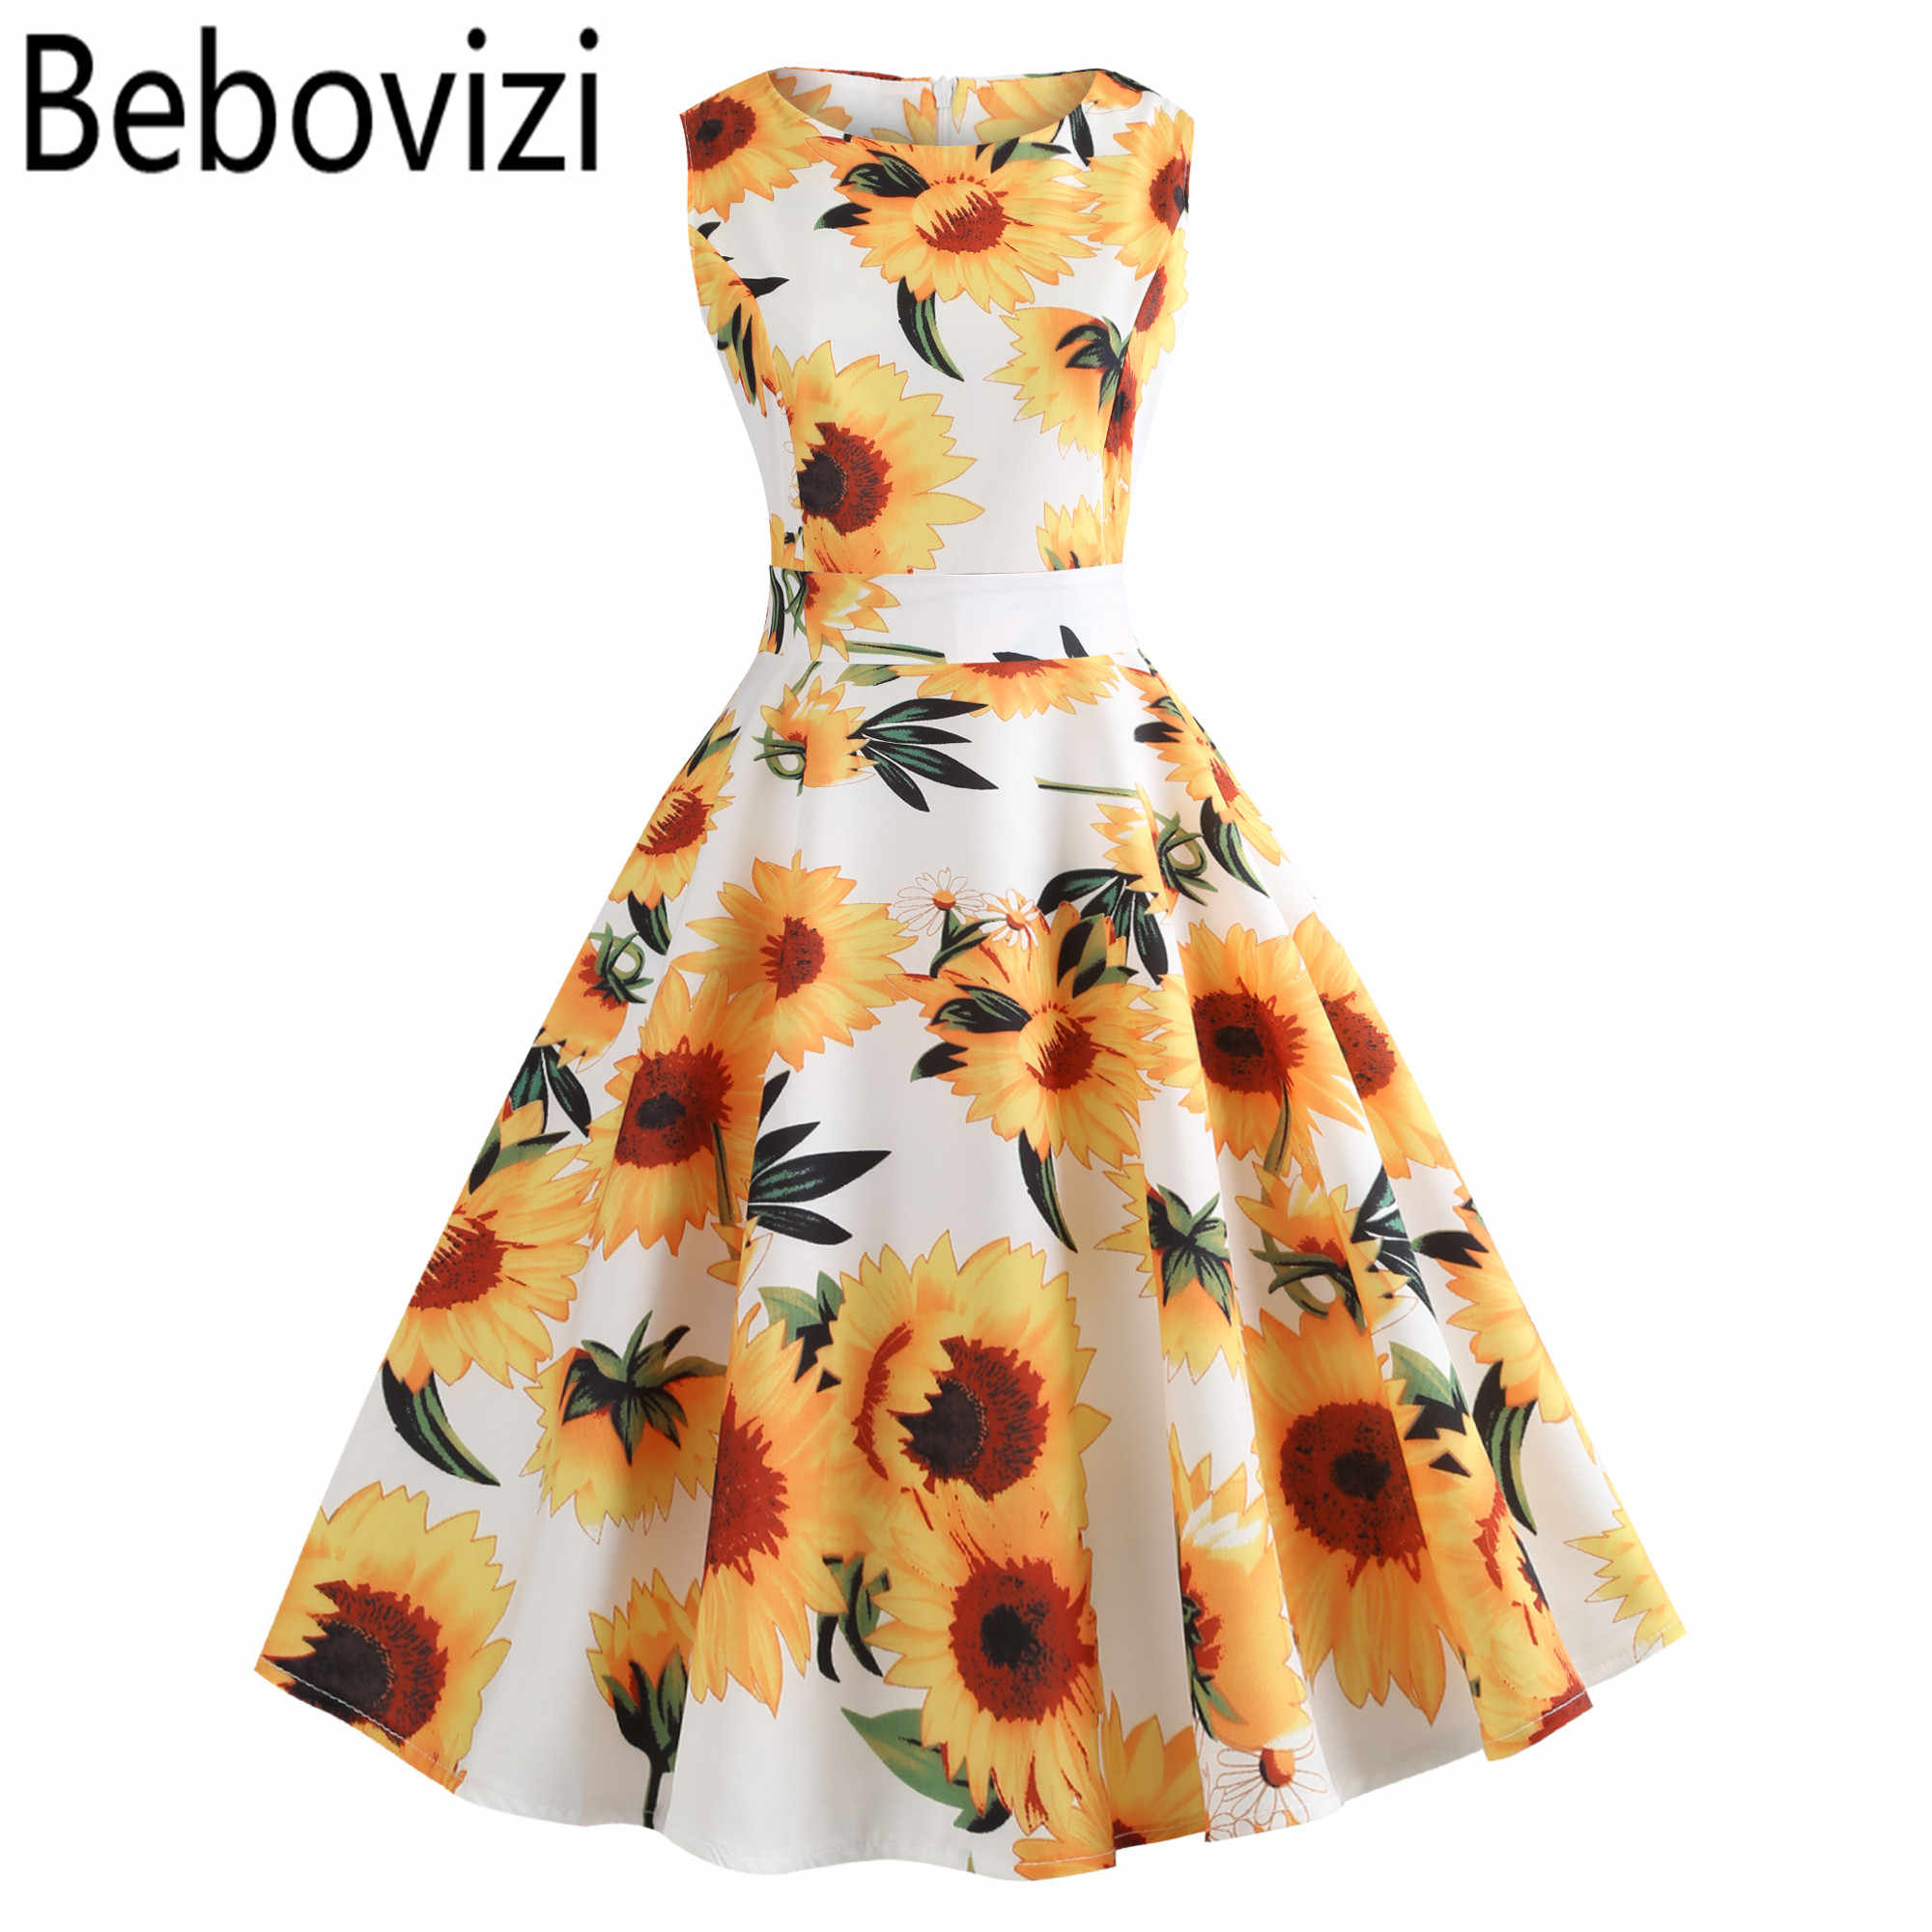 2019 Yellow Sunflower Plus Size Vintage Dress Robe Femme Casual Elegant  Summer Clothes O-neck Party Beach Midi Dresses for Women